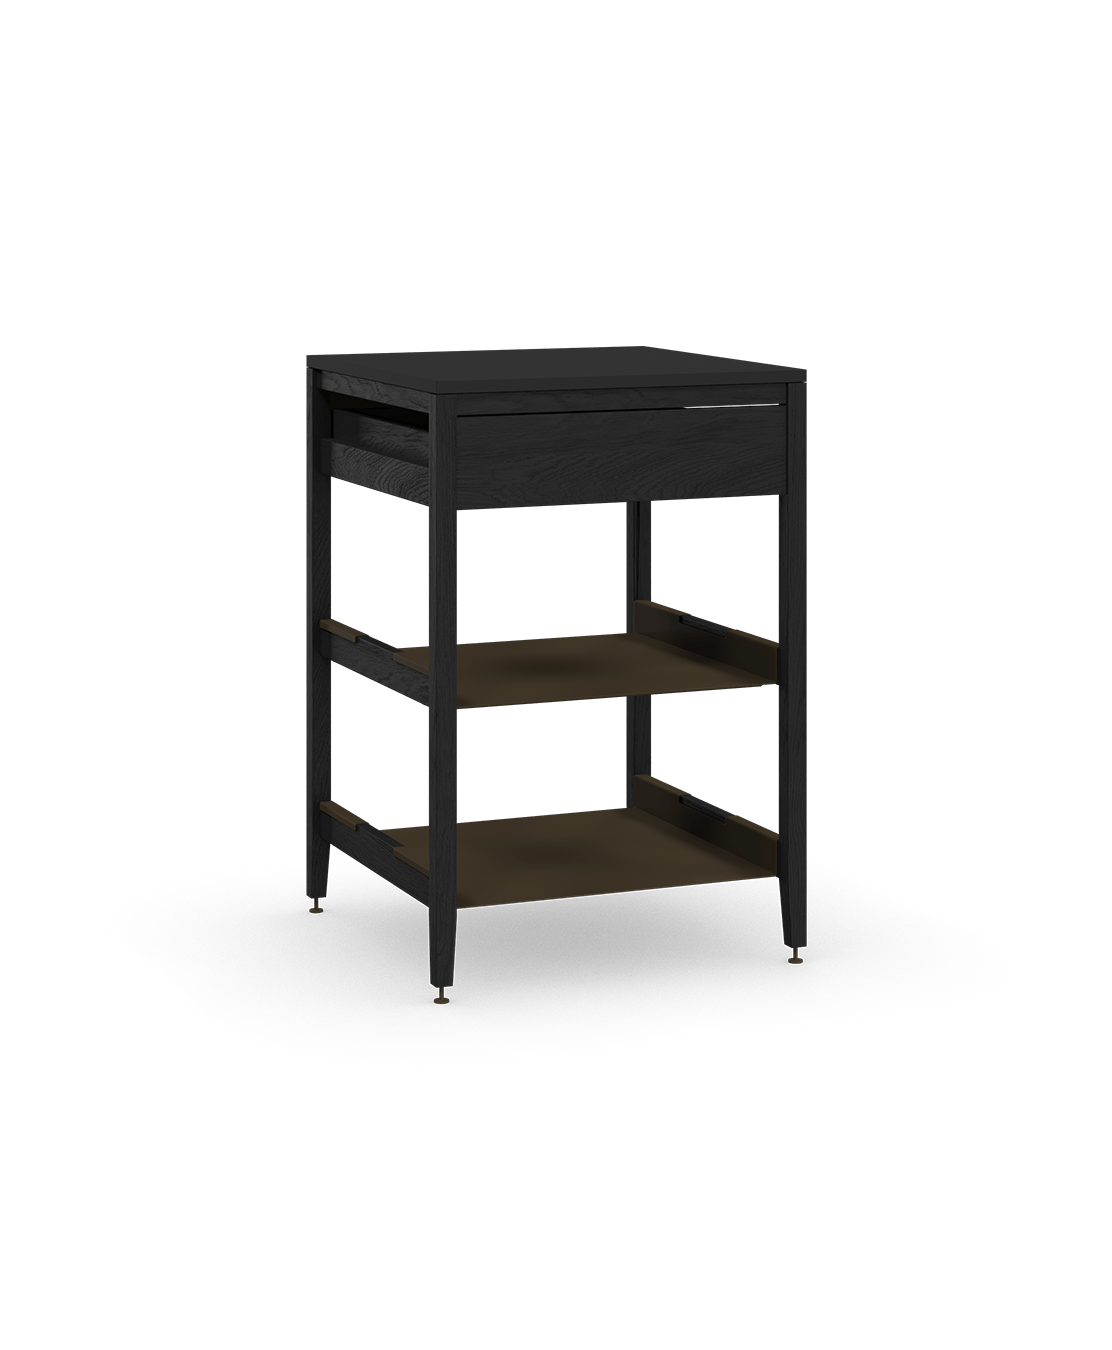 coquo radix midnight black stained oak solid wood modular 2 shelves 1 drawer base kitchen cabinet 27 inch C1-C-27SB-1021-BK